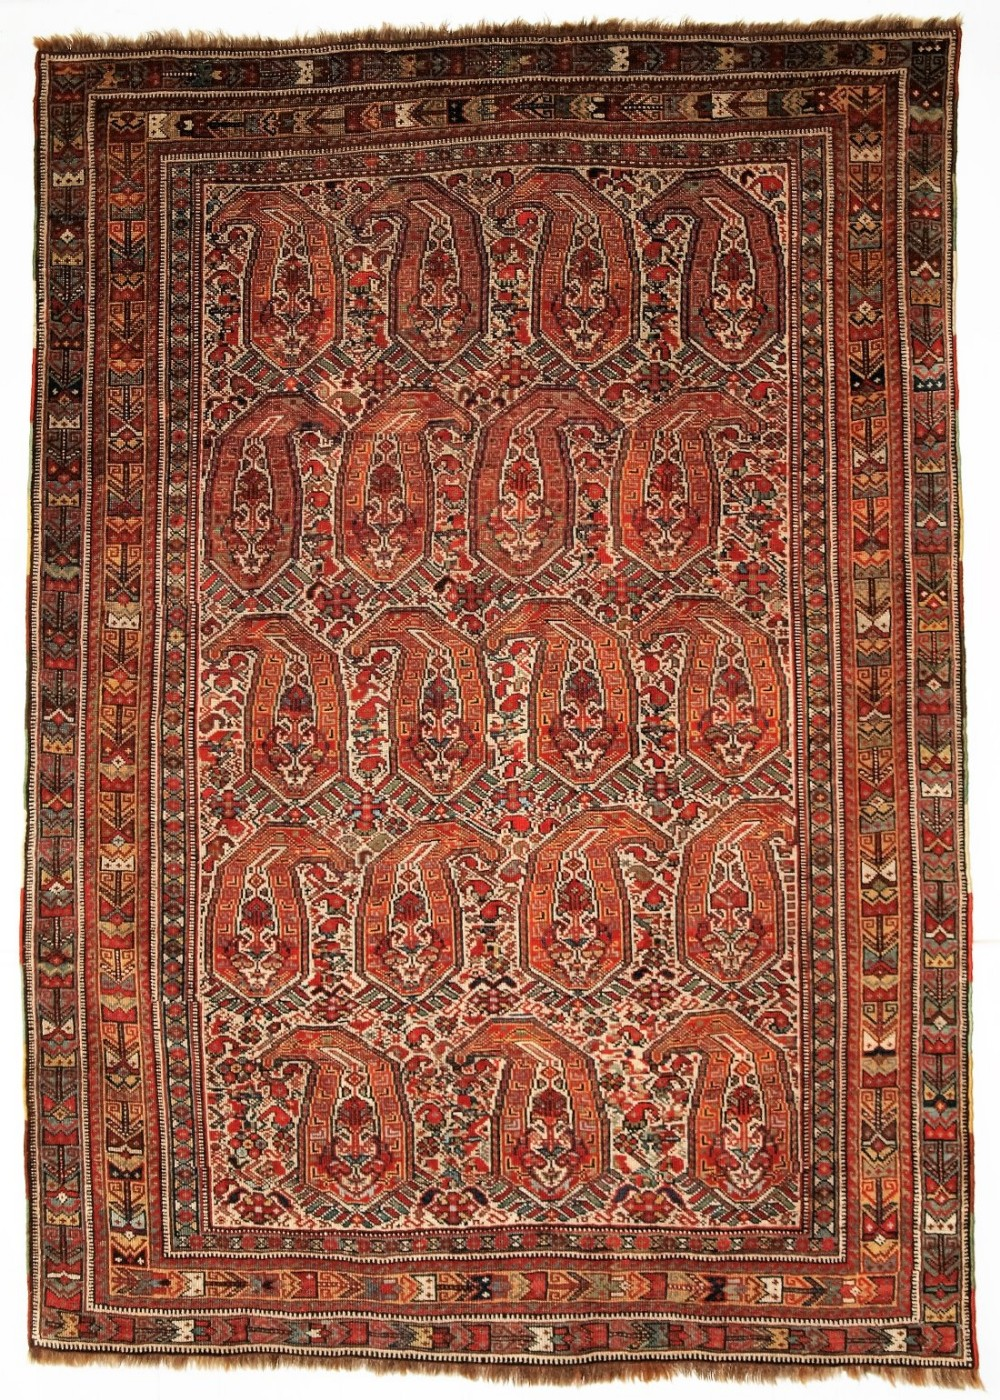 antique nomadic tribal khamseh rug with boteh design circa 1880